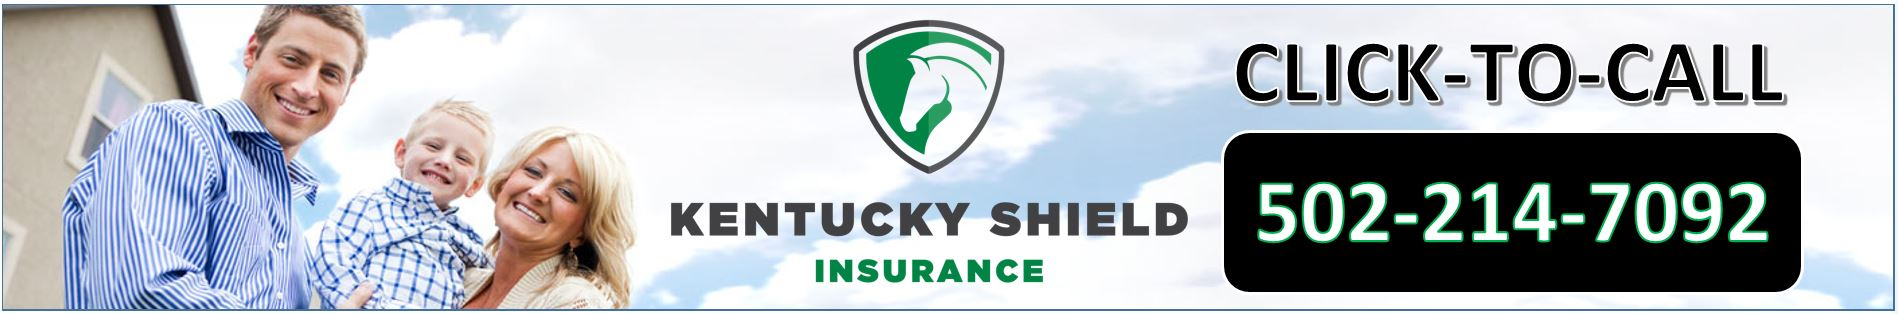 Click-to-Call-Kentucky-Shield-Louisville-Auto-Insurance